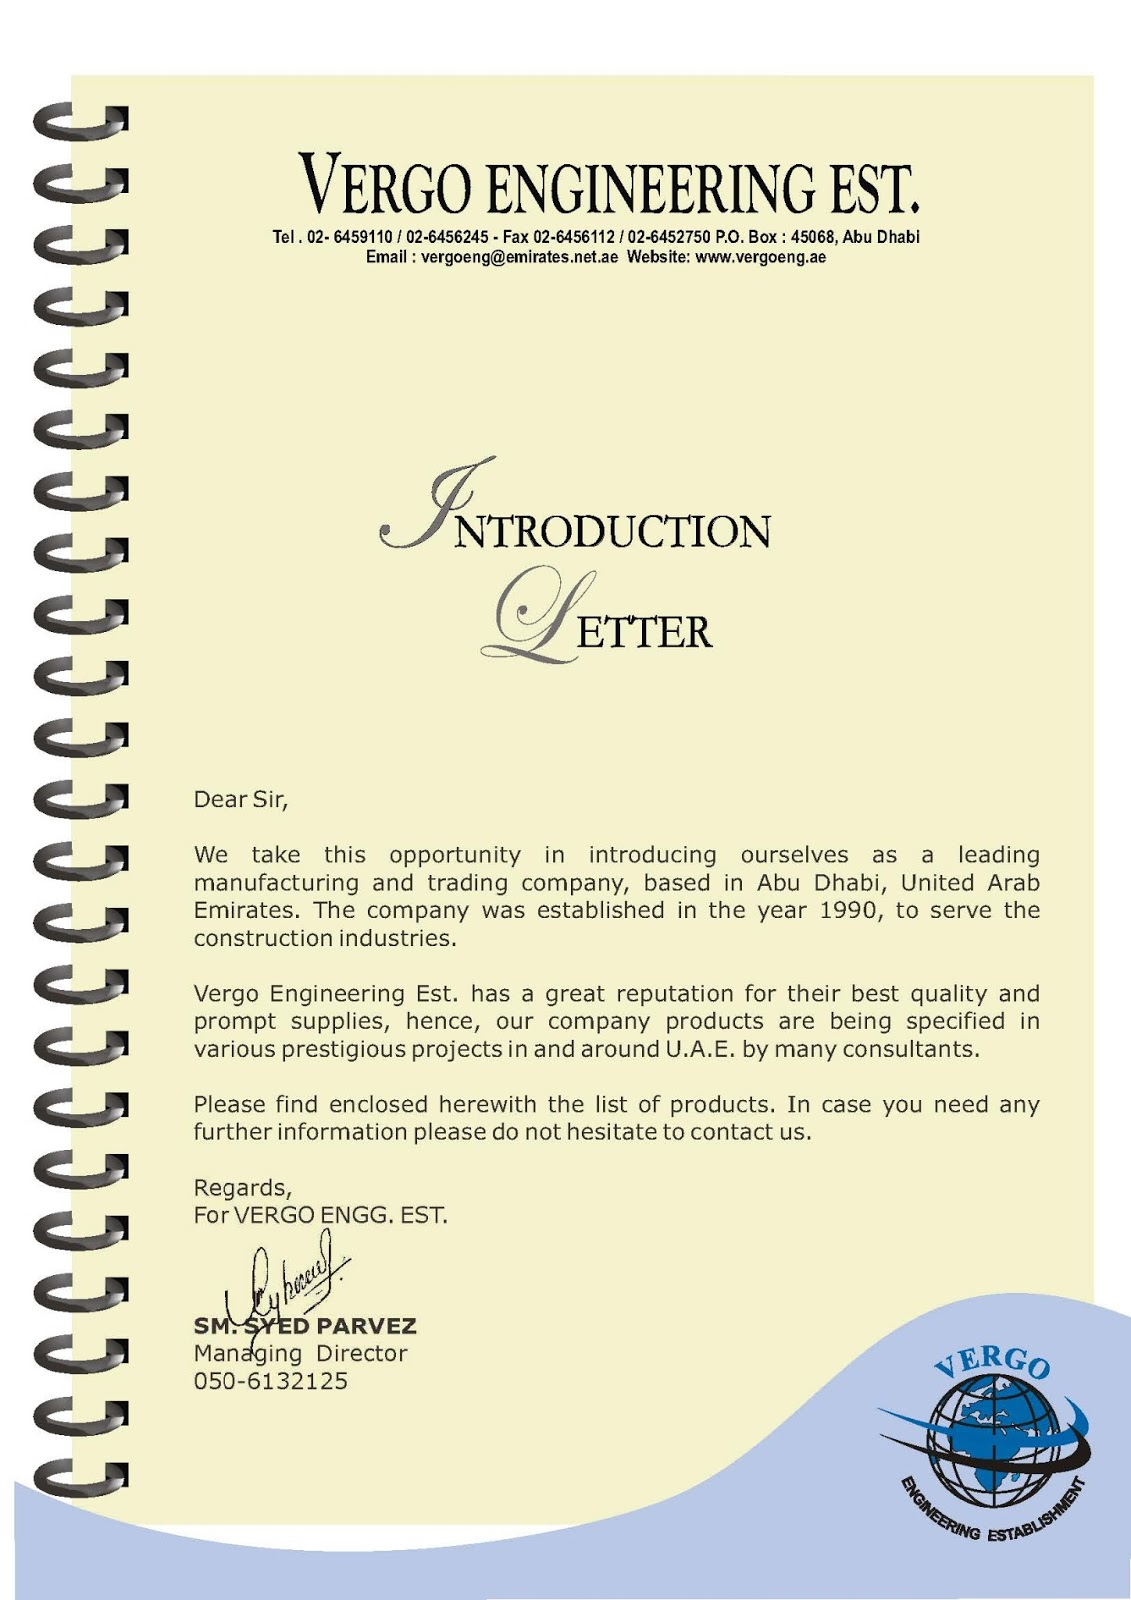 mini pupillage covering letter - business introduction letter introduction letter for